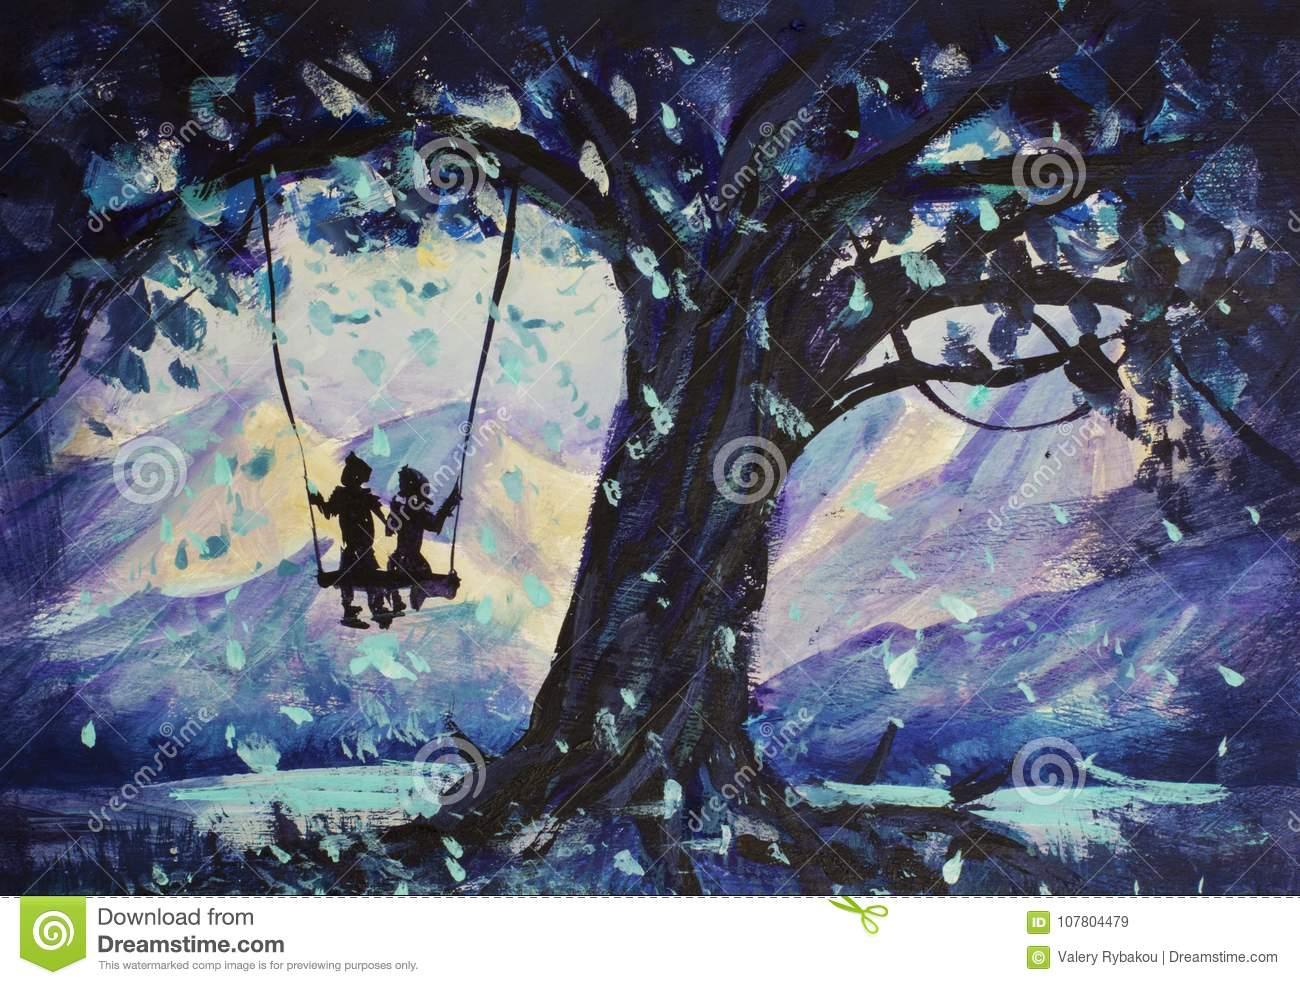 Macro painting fairy tale, abstraction male and girl ride on swing. mountains in background. illustration to book